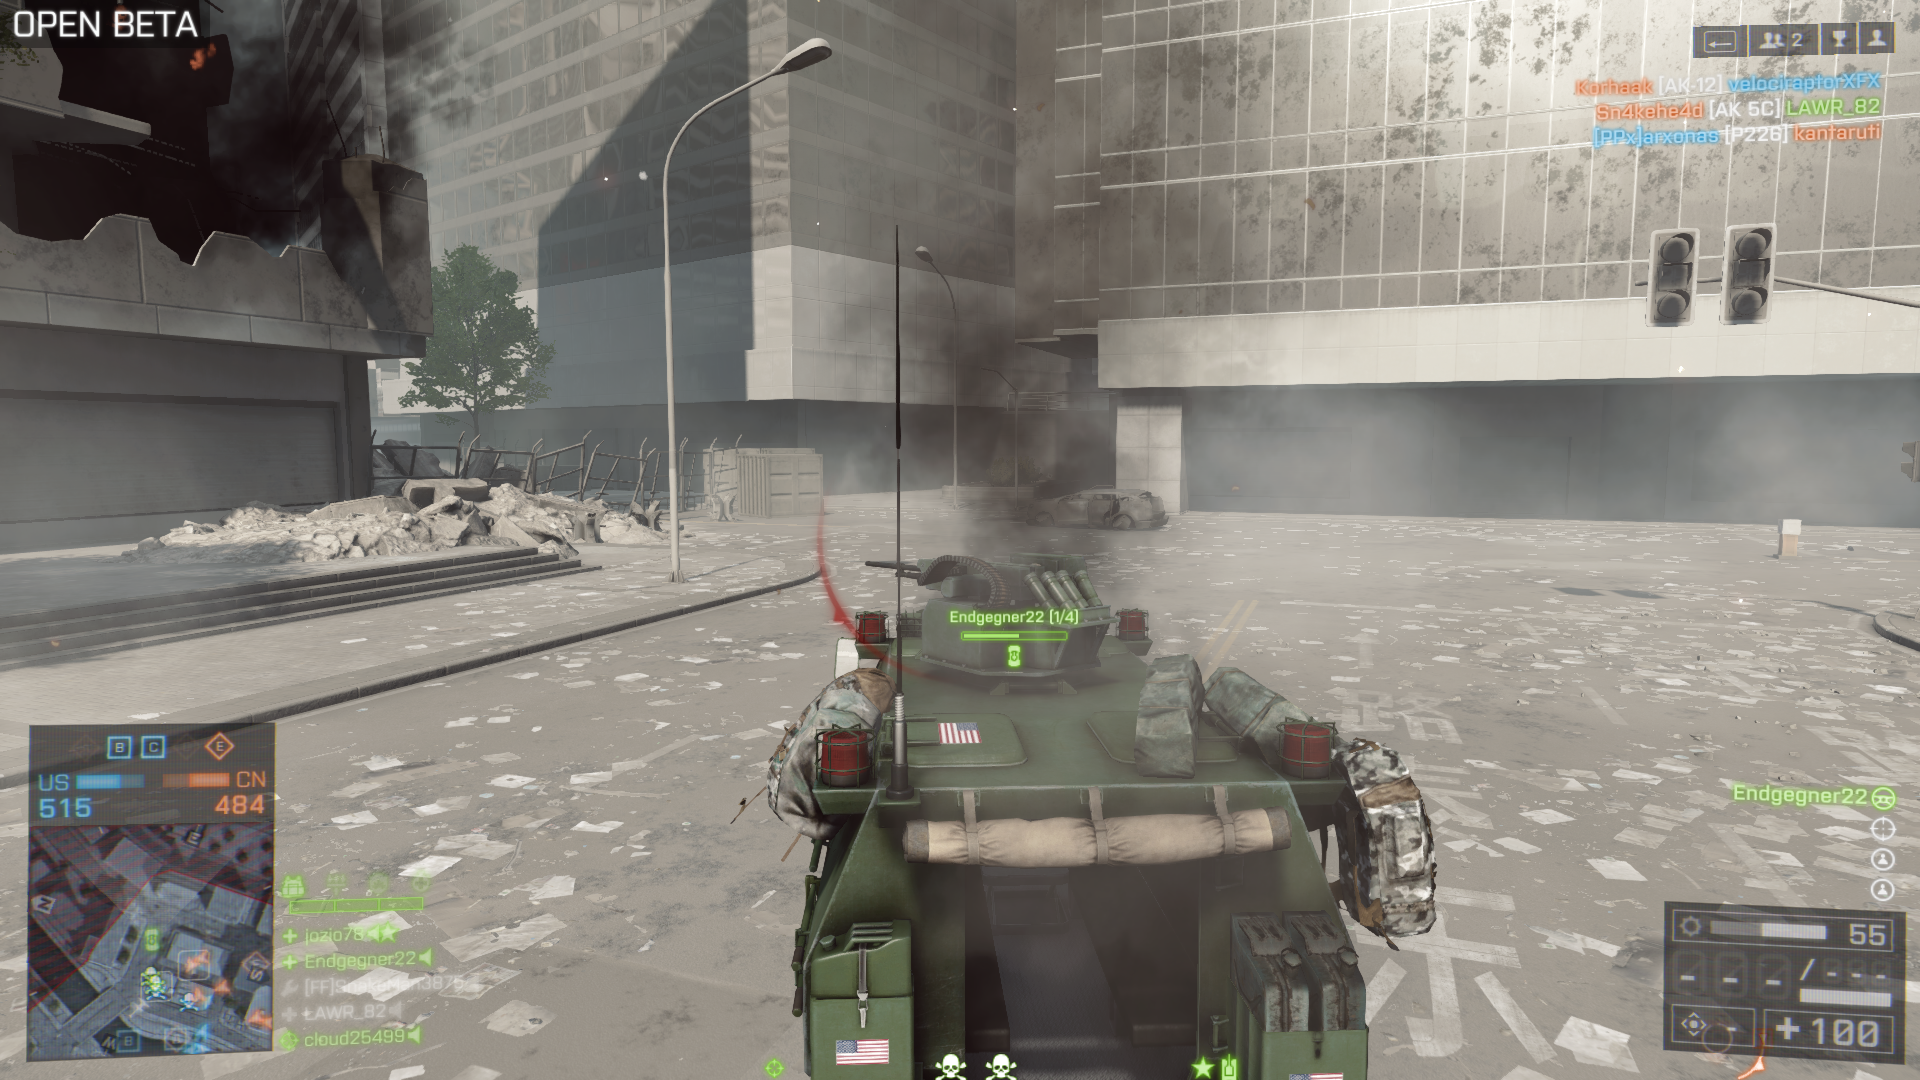 http://endgegner.fightercom.de/BF4_Screenshot/Battlefield4OpenBeta06.png